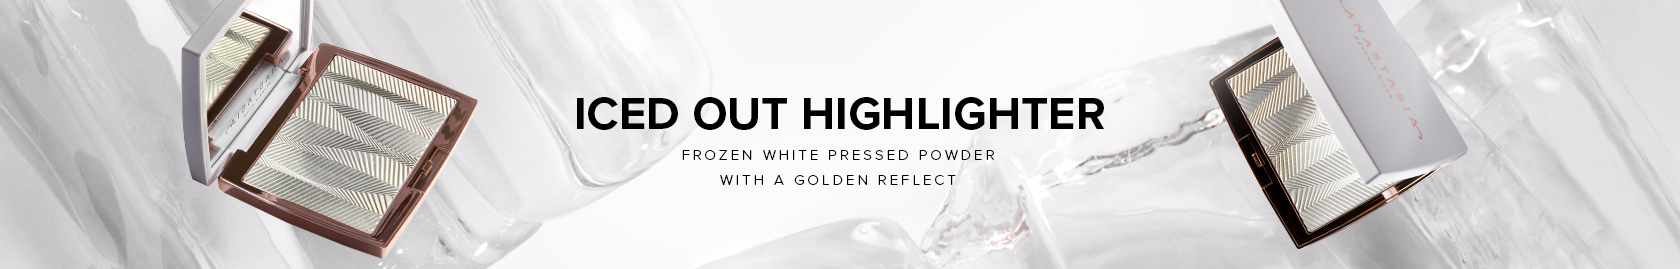 Iced Out Highlighter - Frozen White Pressed Powder with a Golden Reflect